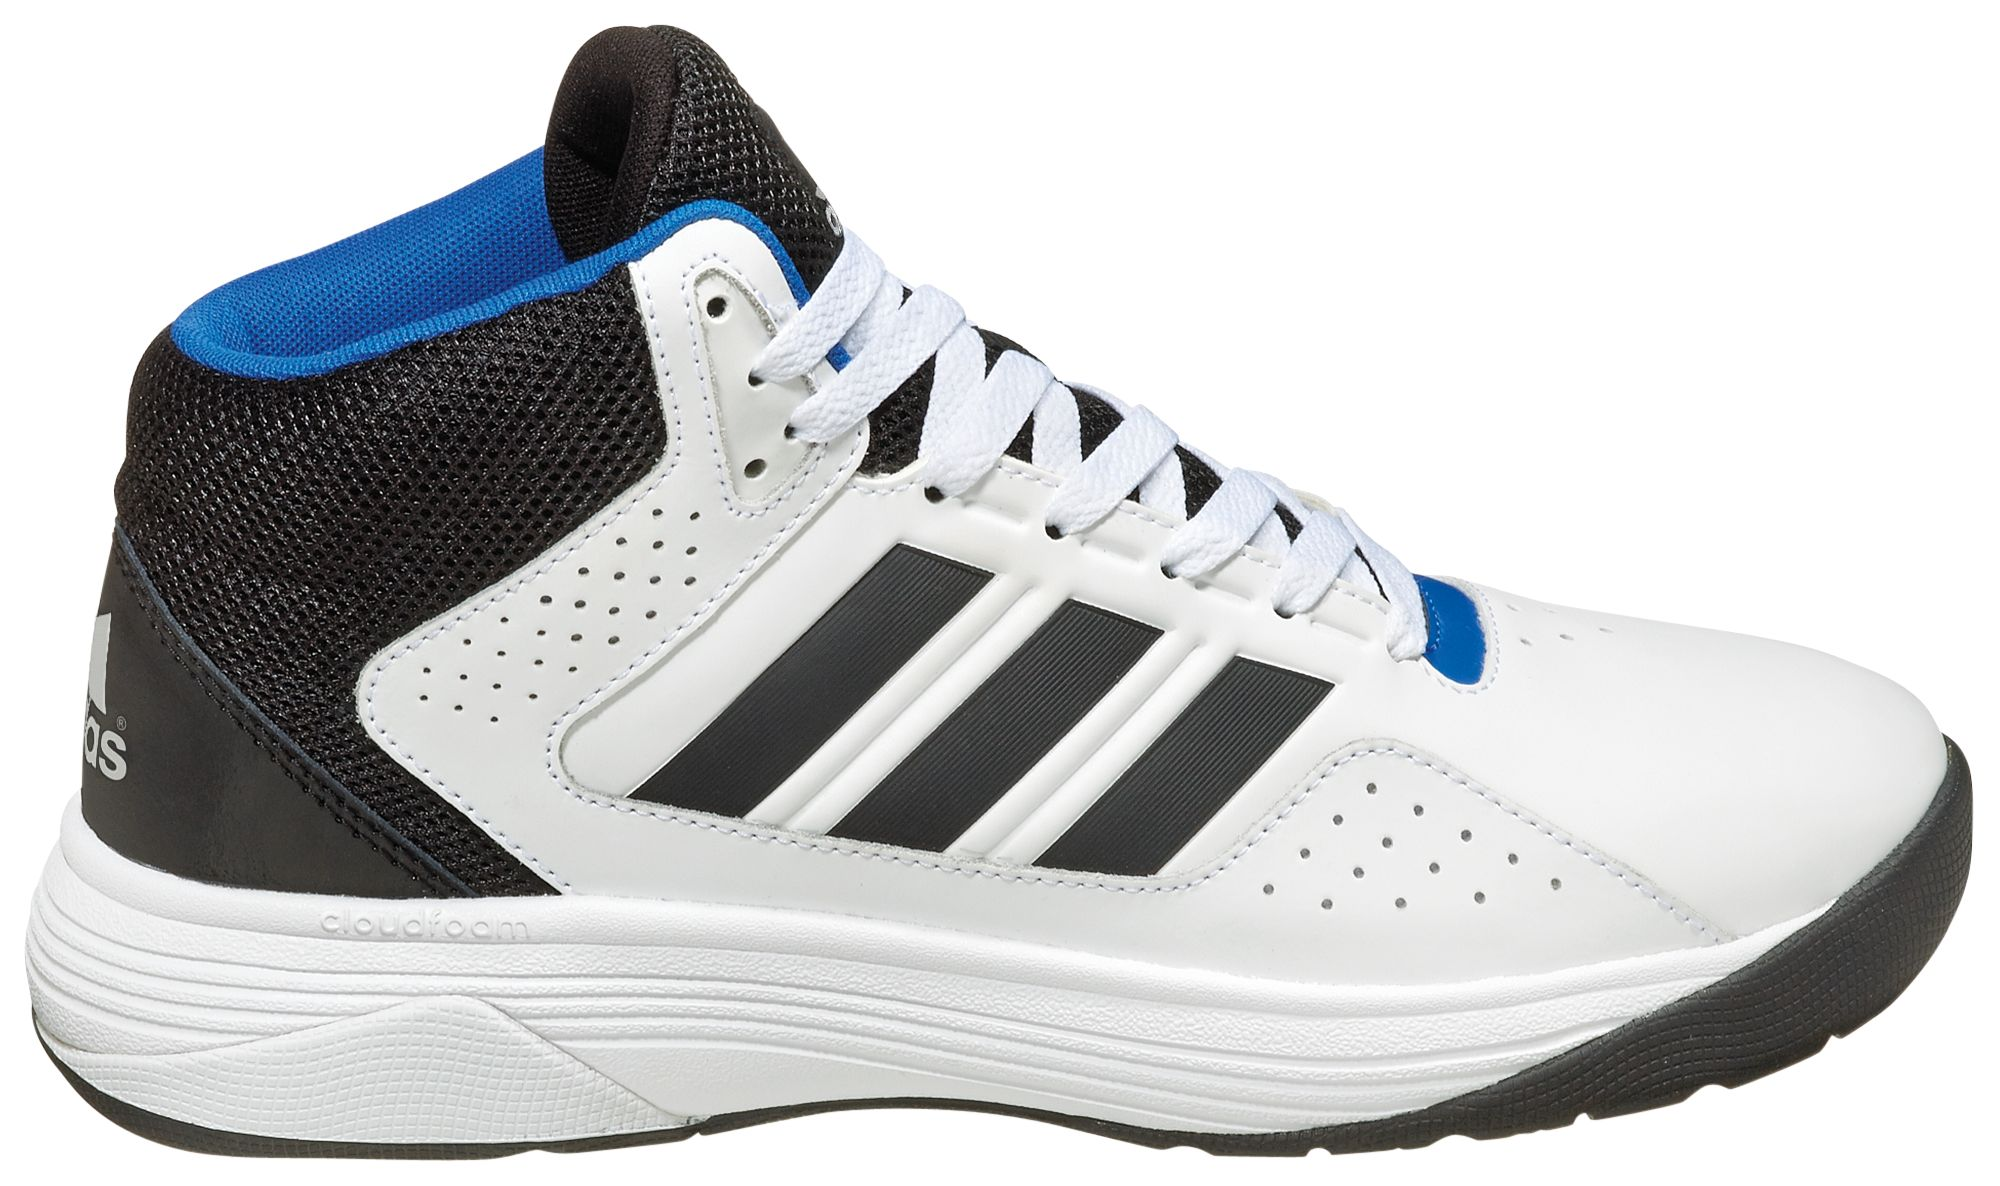 watch 31054 c588e Product Image   adidas Neo Men u0027s Cloudfoam Ilation Mid Basketball Shoes